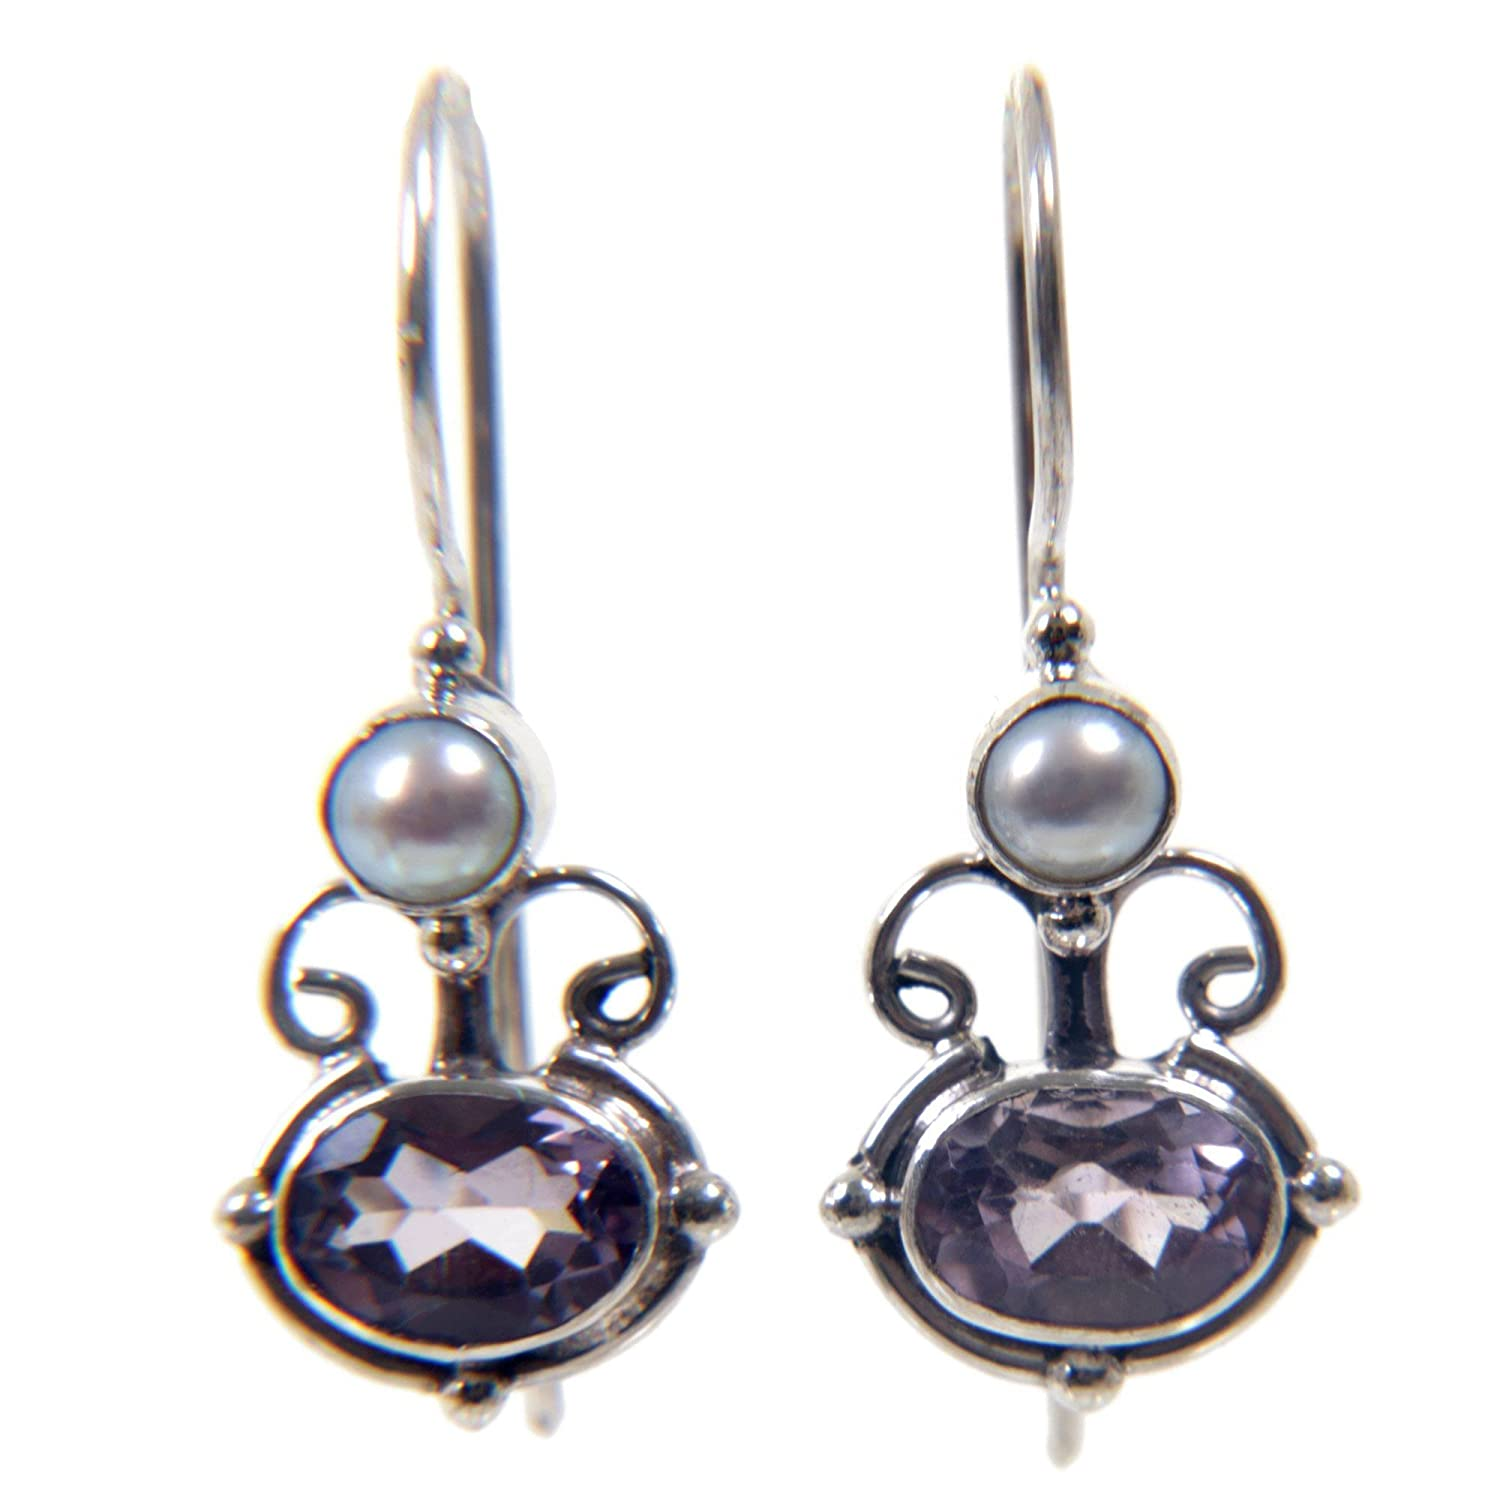 6df5709cfaf45 NOVICA Amethyst and Cultured Freshwater Pearl Earrings with Sterling  Silver, Sunrise Spirit'